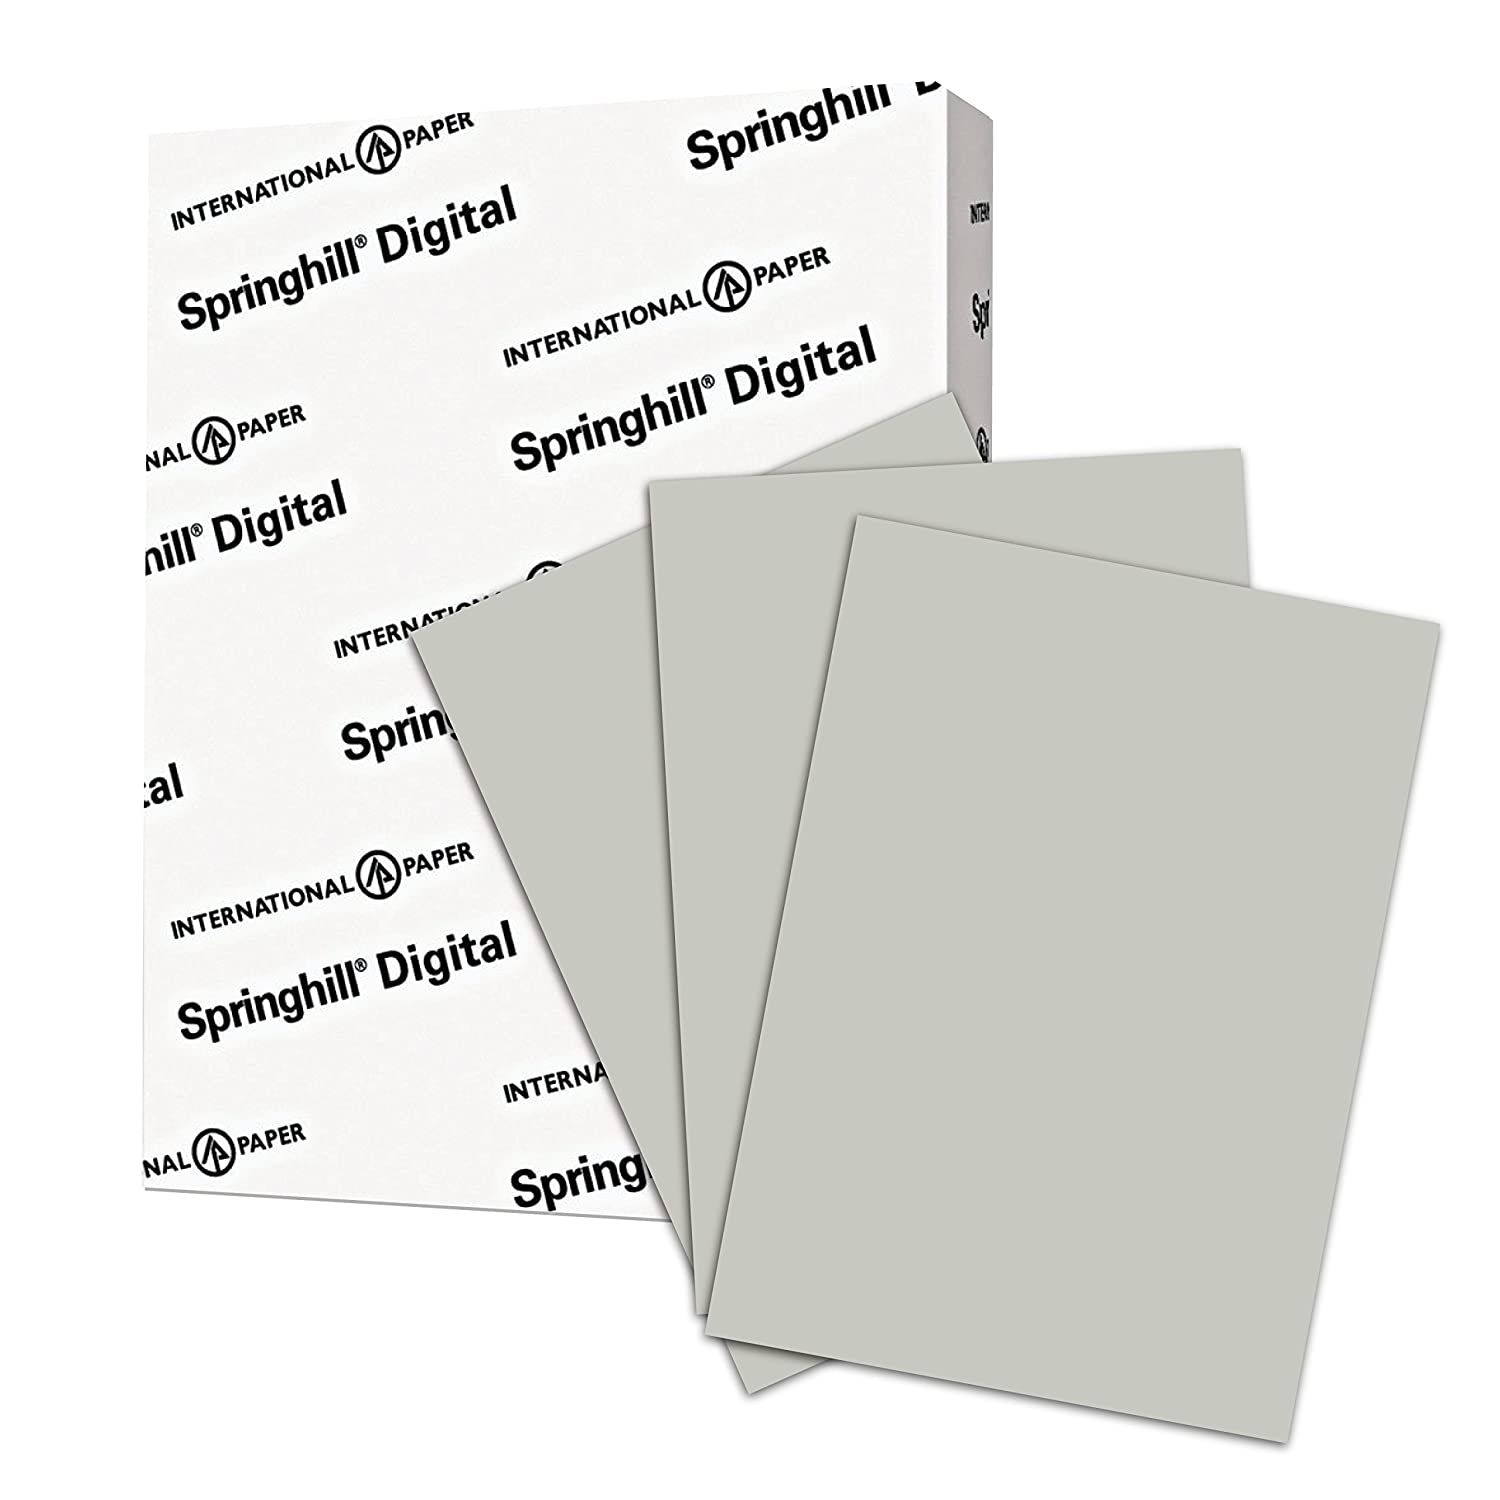 Springhill, Digital Vellum Bristol Cover Gray, 67lb, Letter, 8.5 x 11, 250 Sheets / 1 Ream, (066000R) Made In The USA International Paper (Office)